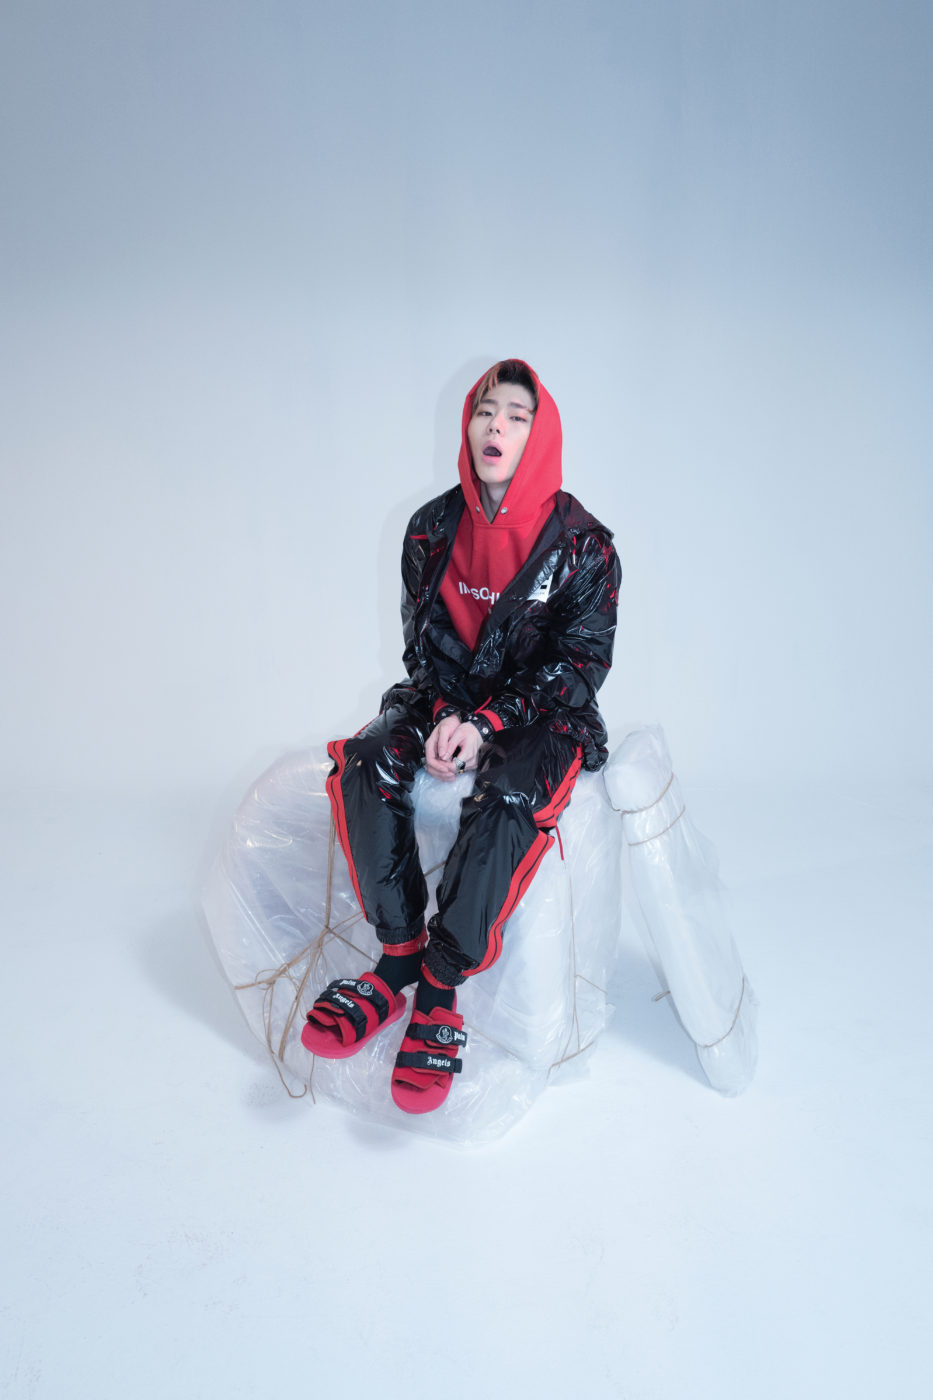 zico, zico solo, zico debut, zico artist, block b, block b members, block b facts, block b profile, block b zico